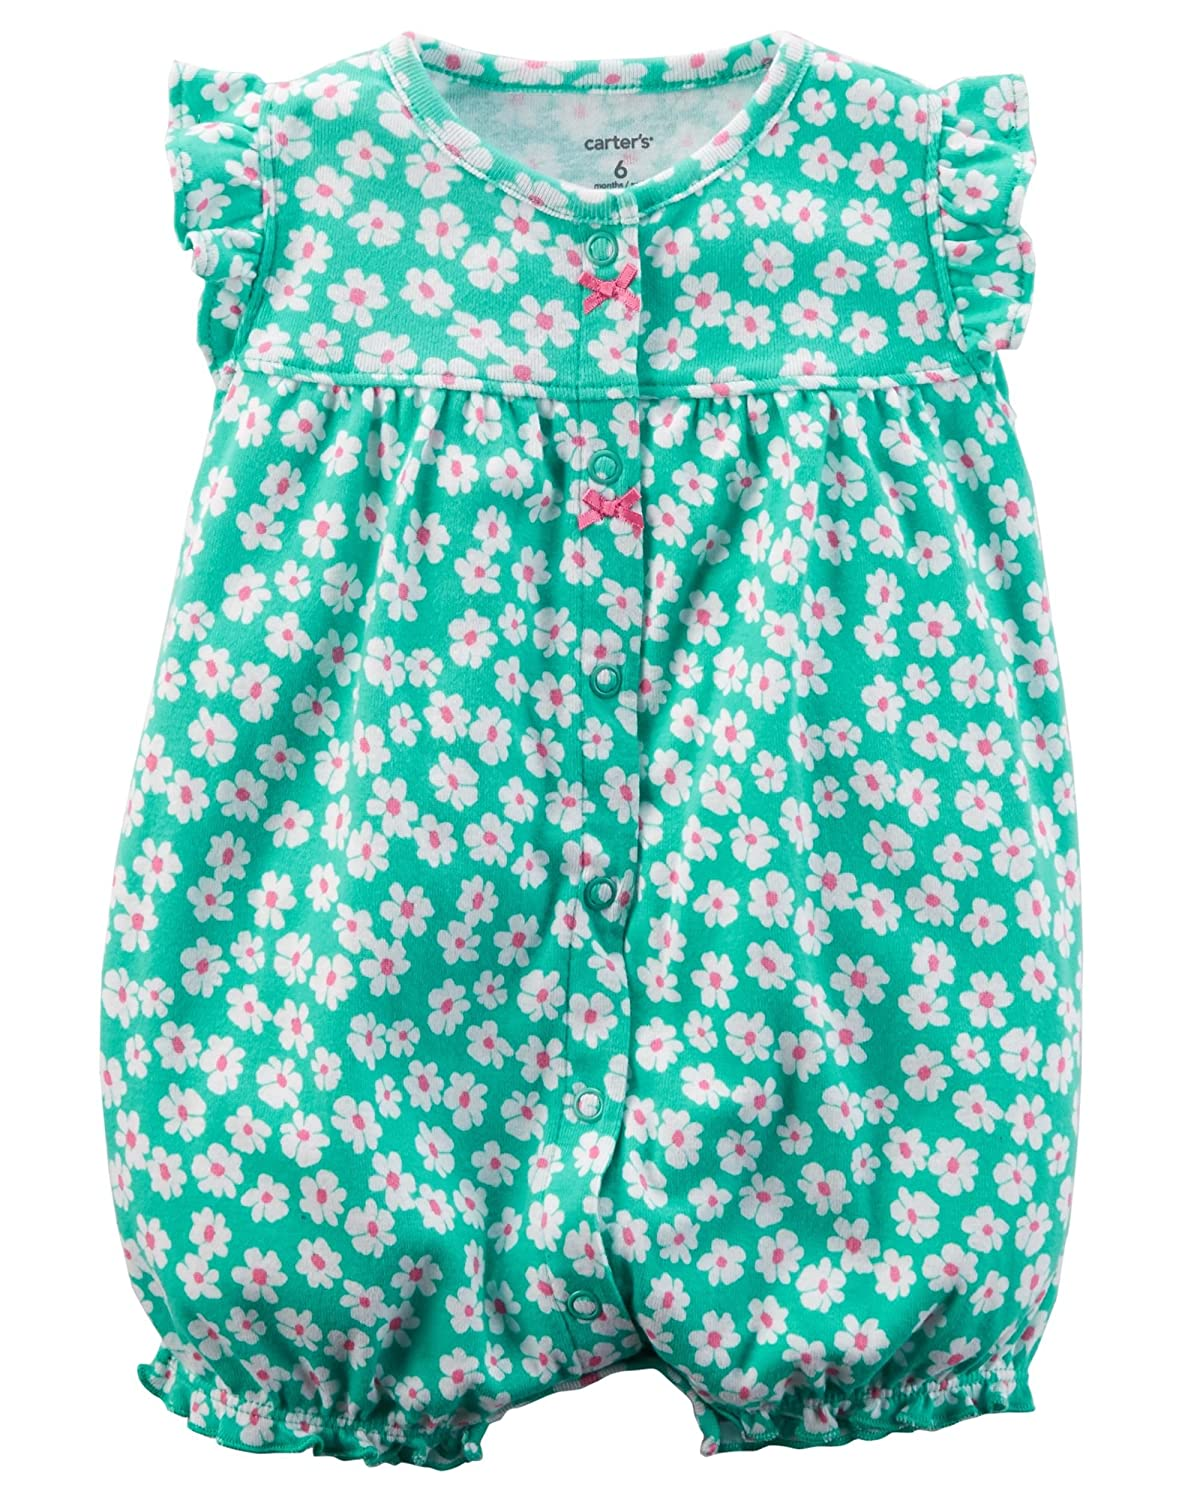 0ba9f0f3a This comfy cotton romper from Carter\'s features a vibrant floral print and  stylish flutter sleeves.